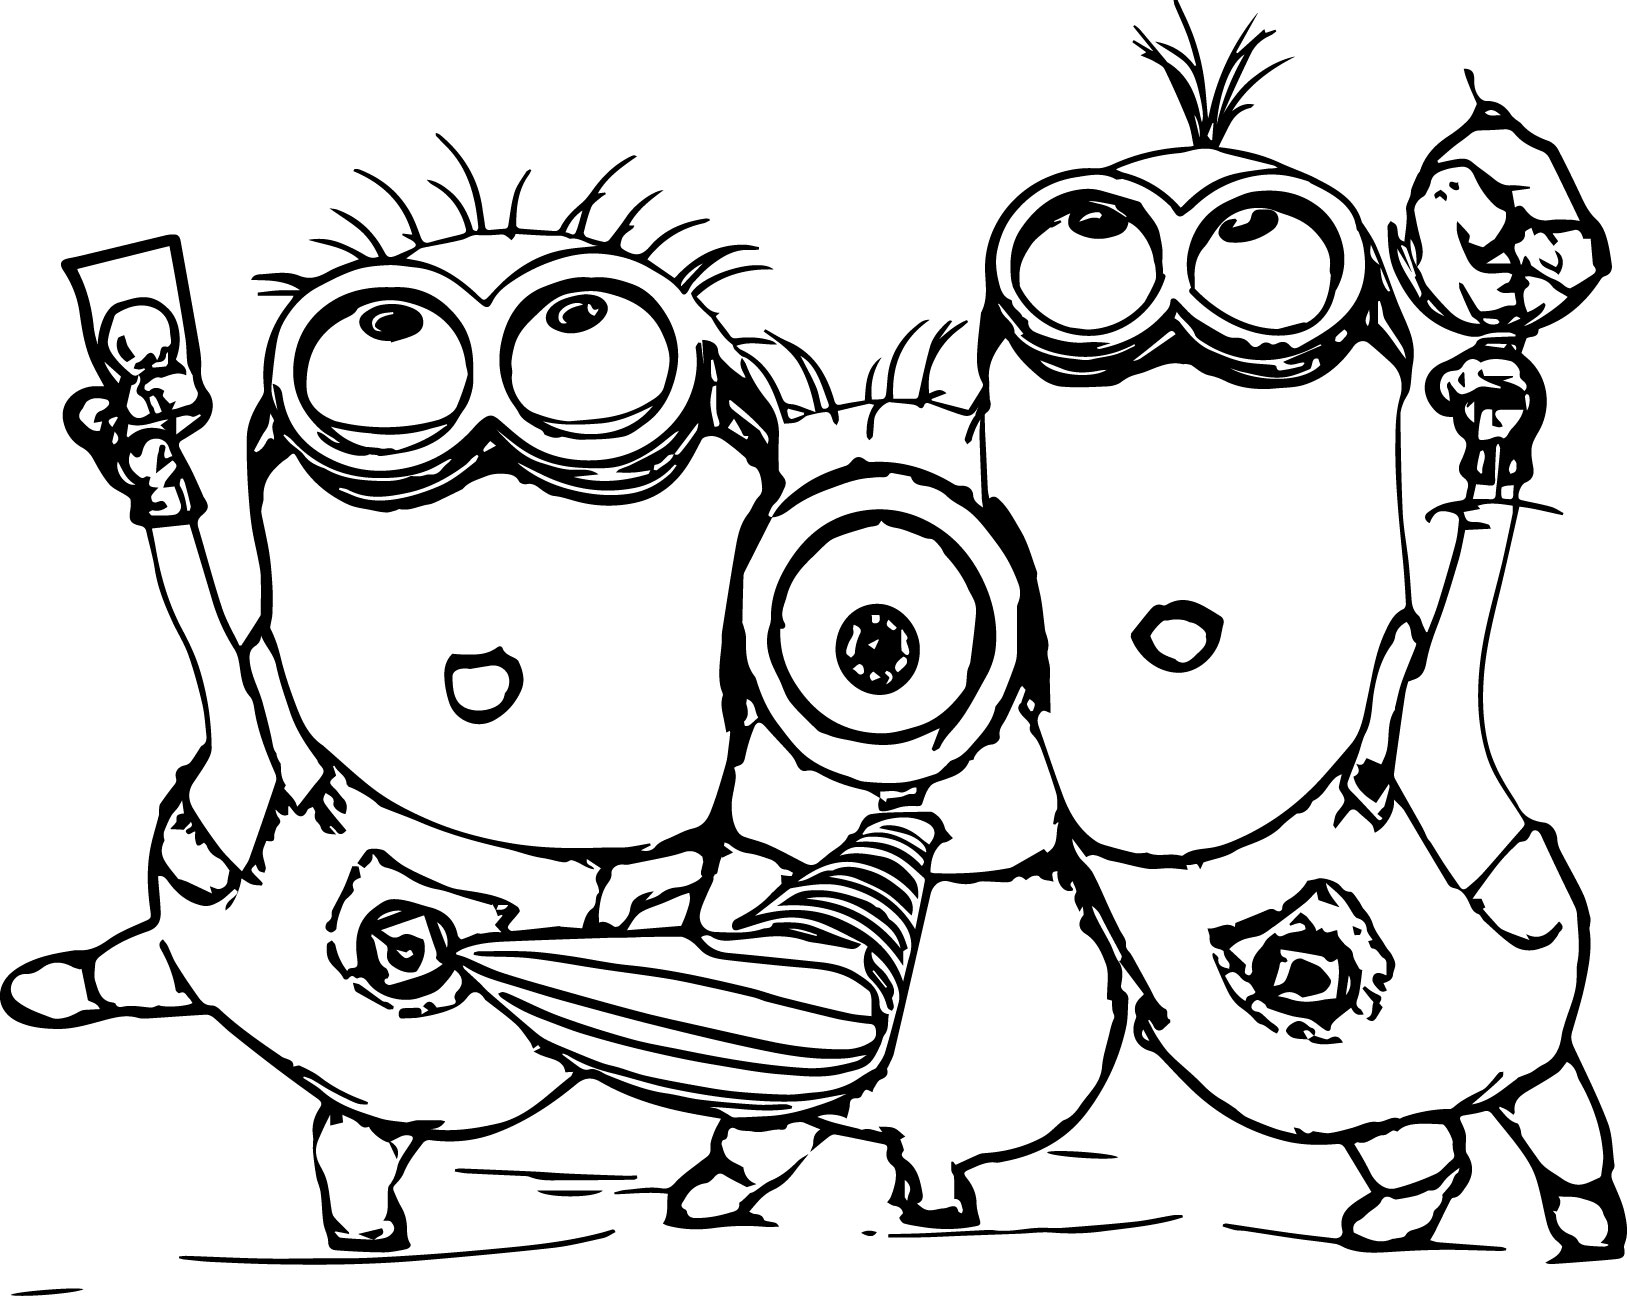 Disney Coloring Pages For 3 Year Olds : Vampire minion coloring pages download and print for free